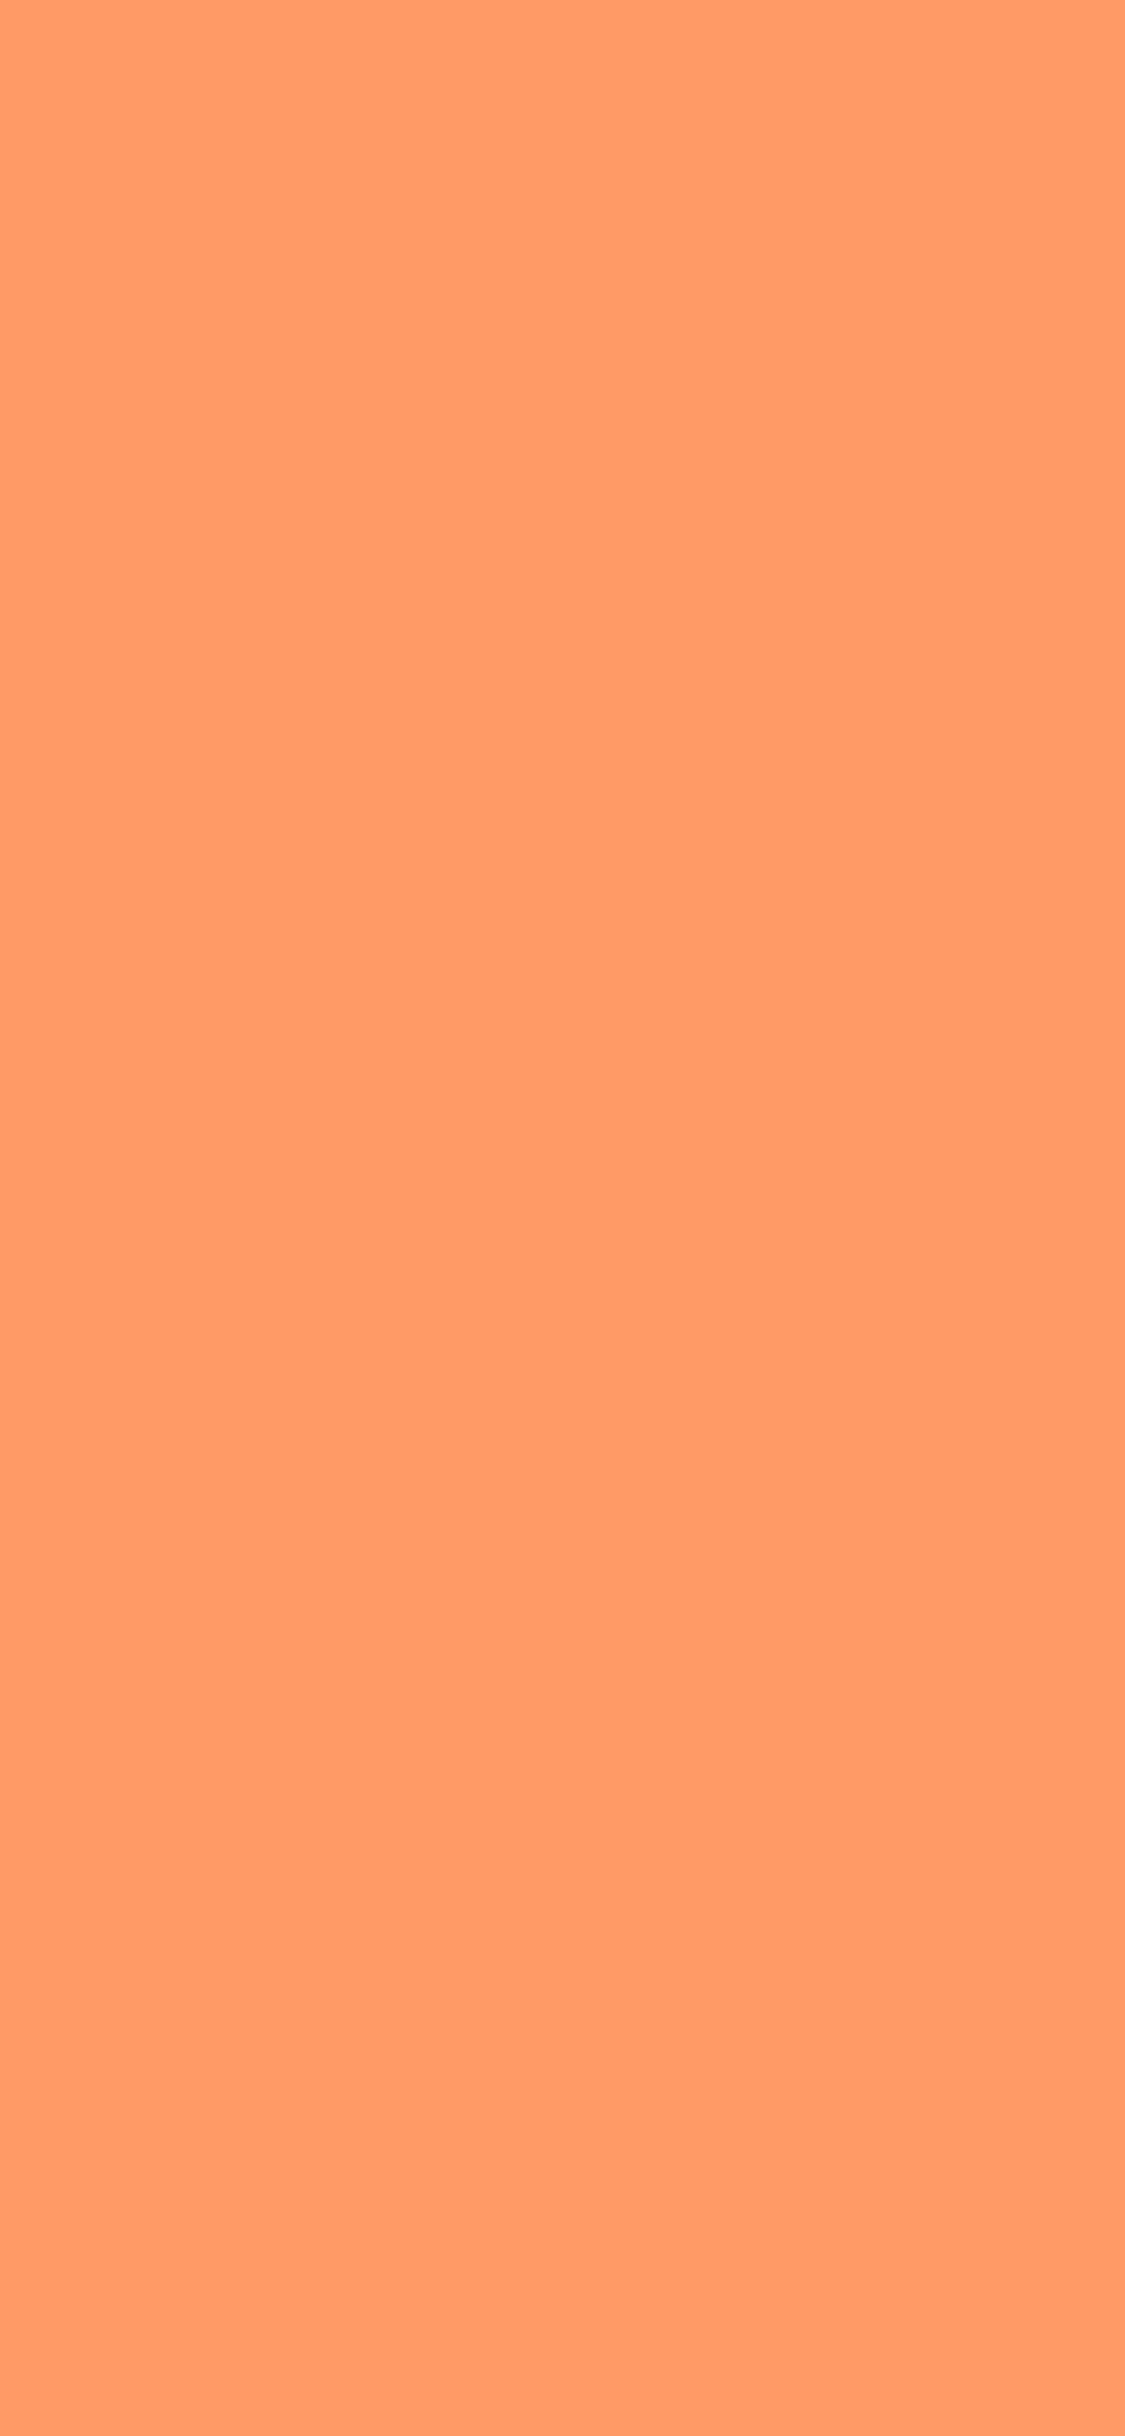 1125x2436 Atomic Tangerine Solid Color Background